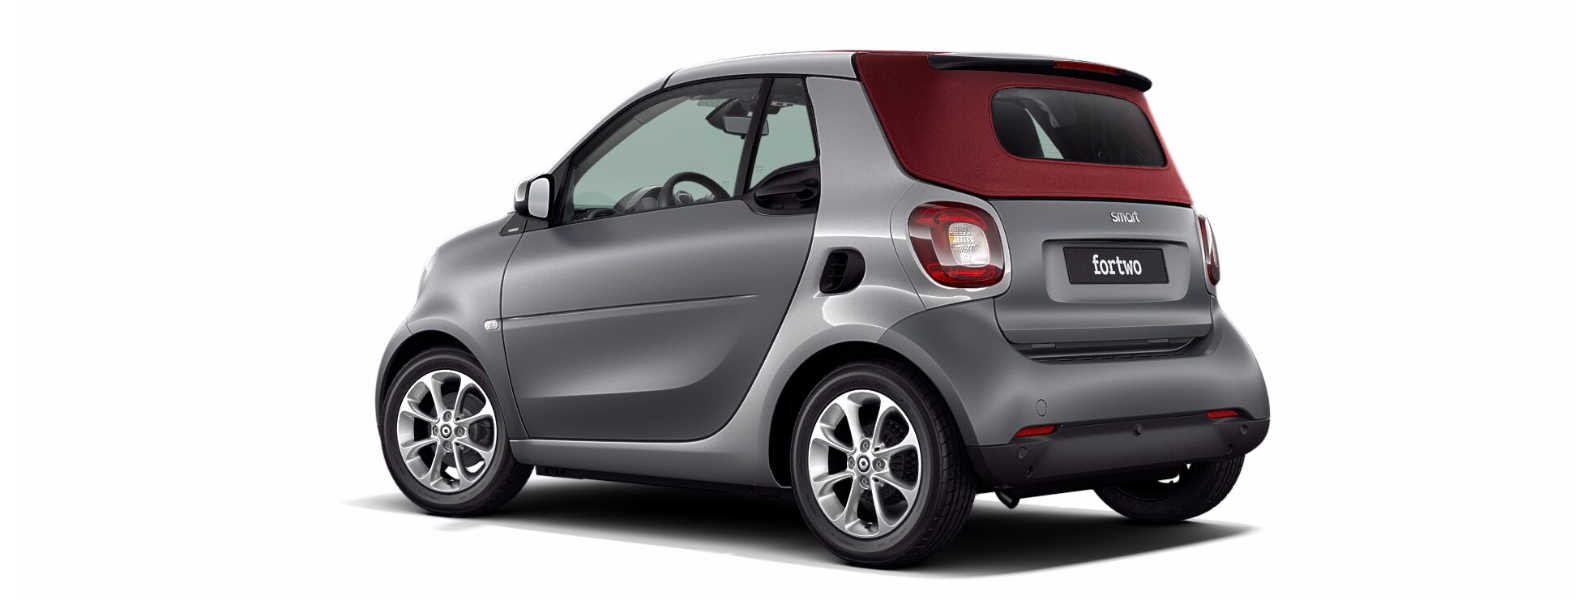 Smart Fortwo And Forfour Colours Guide And Prices Carwow